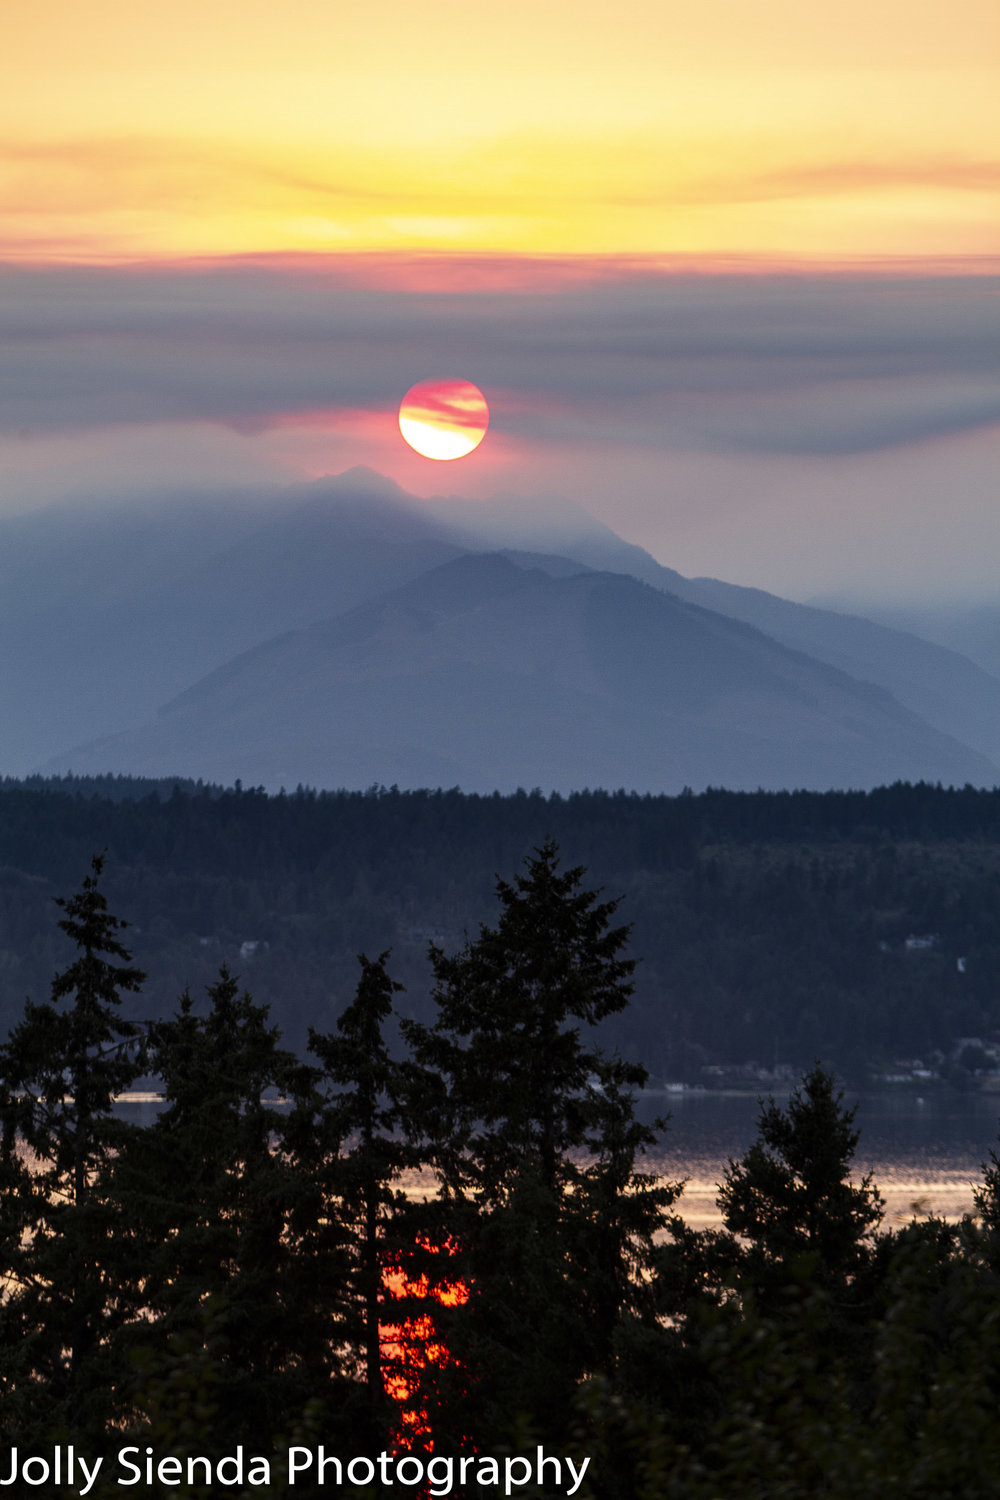 Smoke drifts past the sun and over the mountains